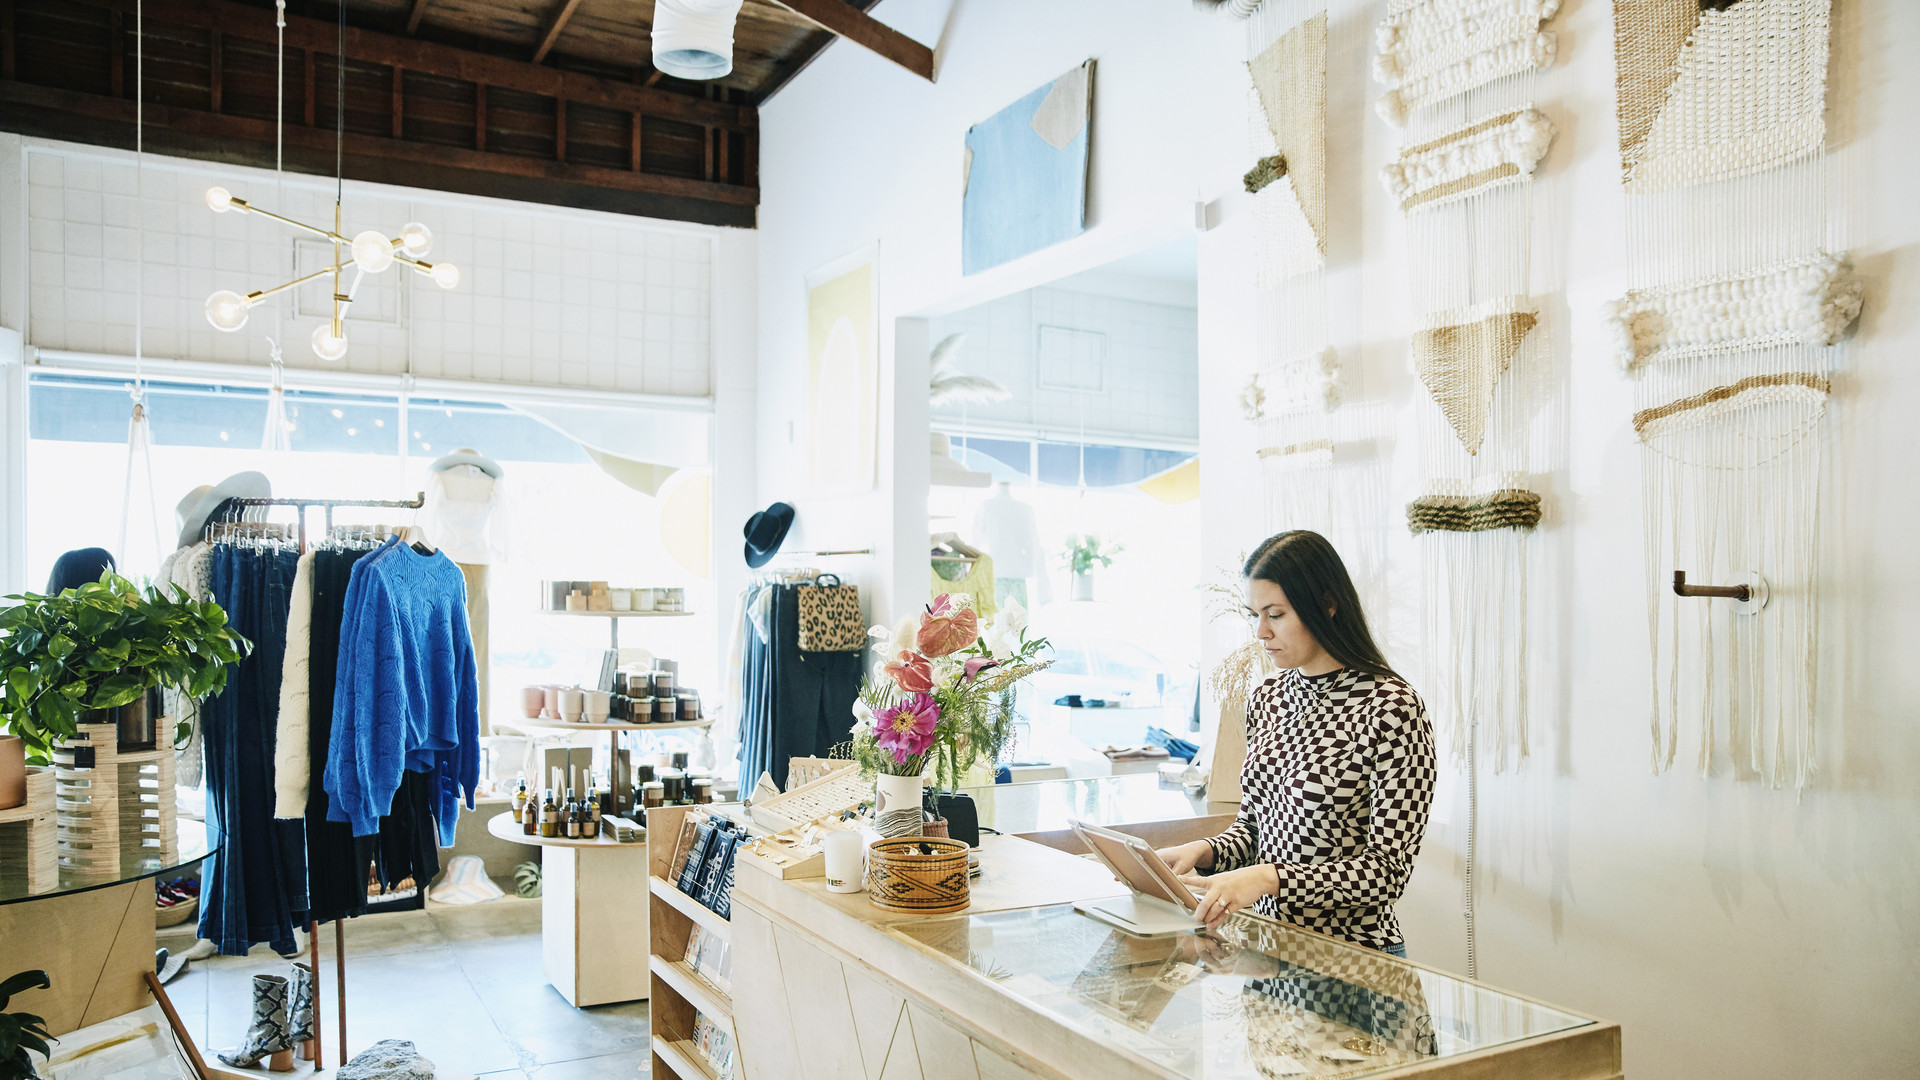 Shop owner working on digital tablet behind counter in clothing boutique